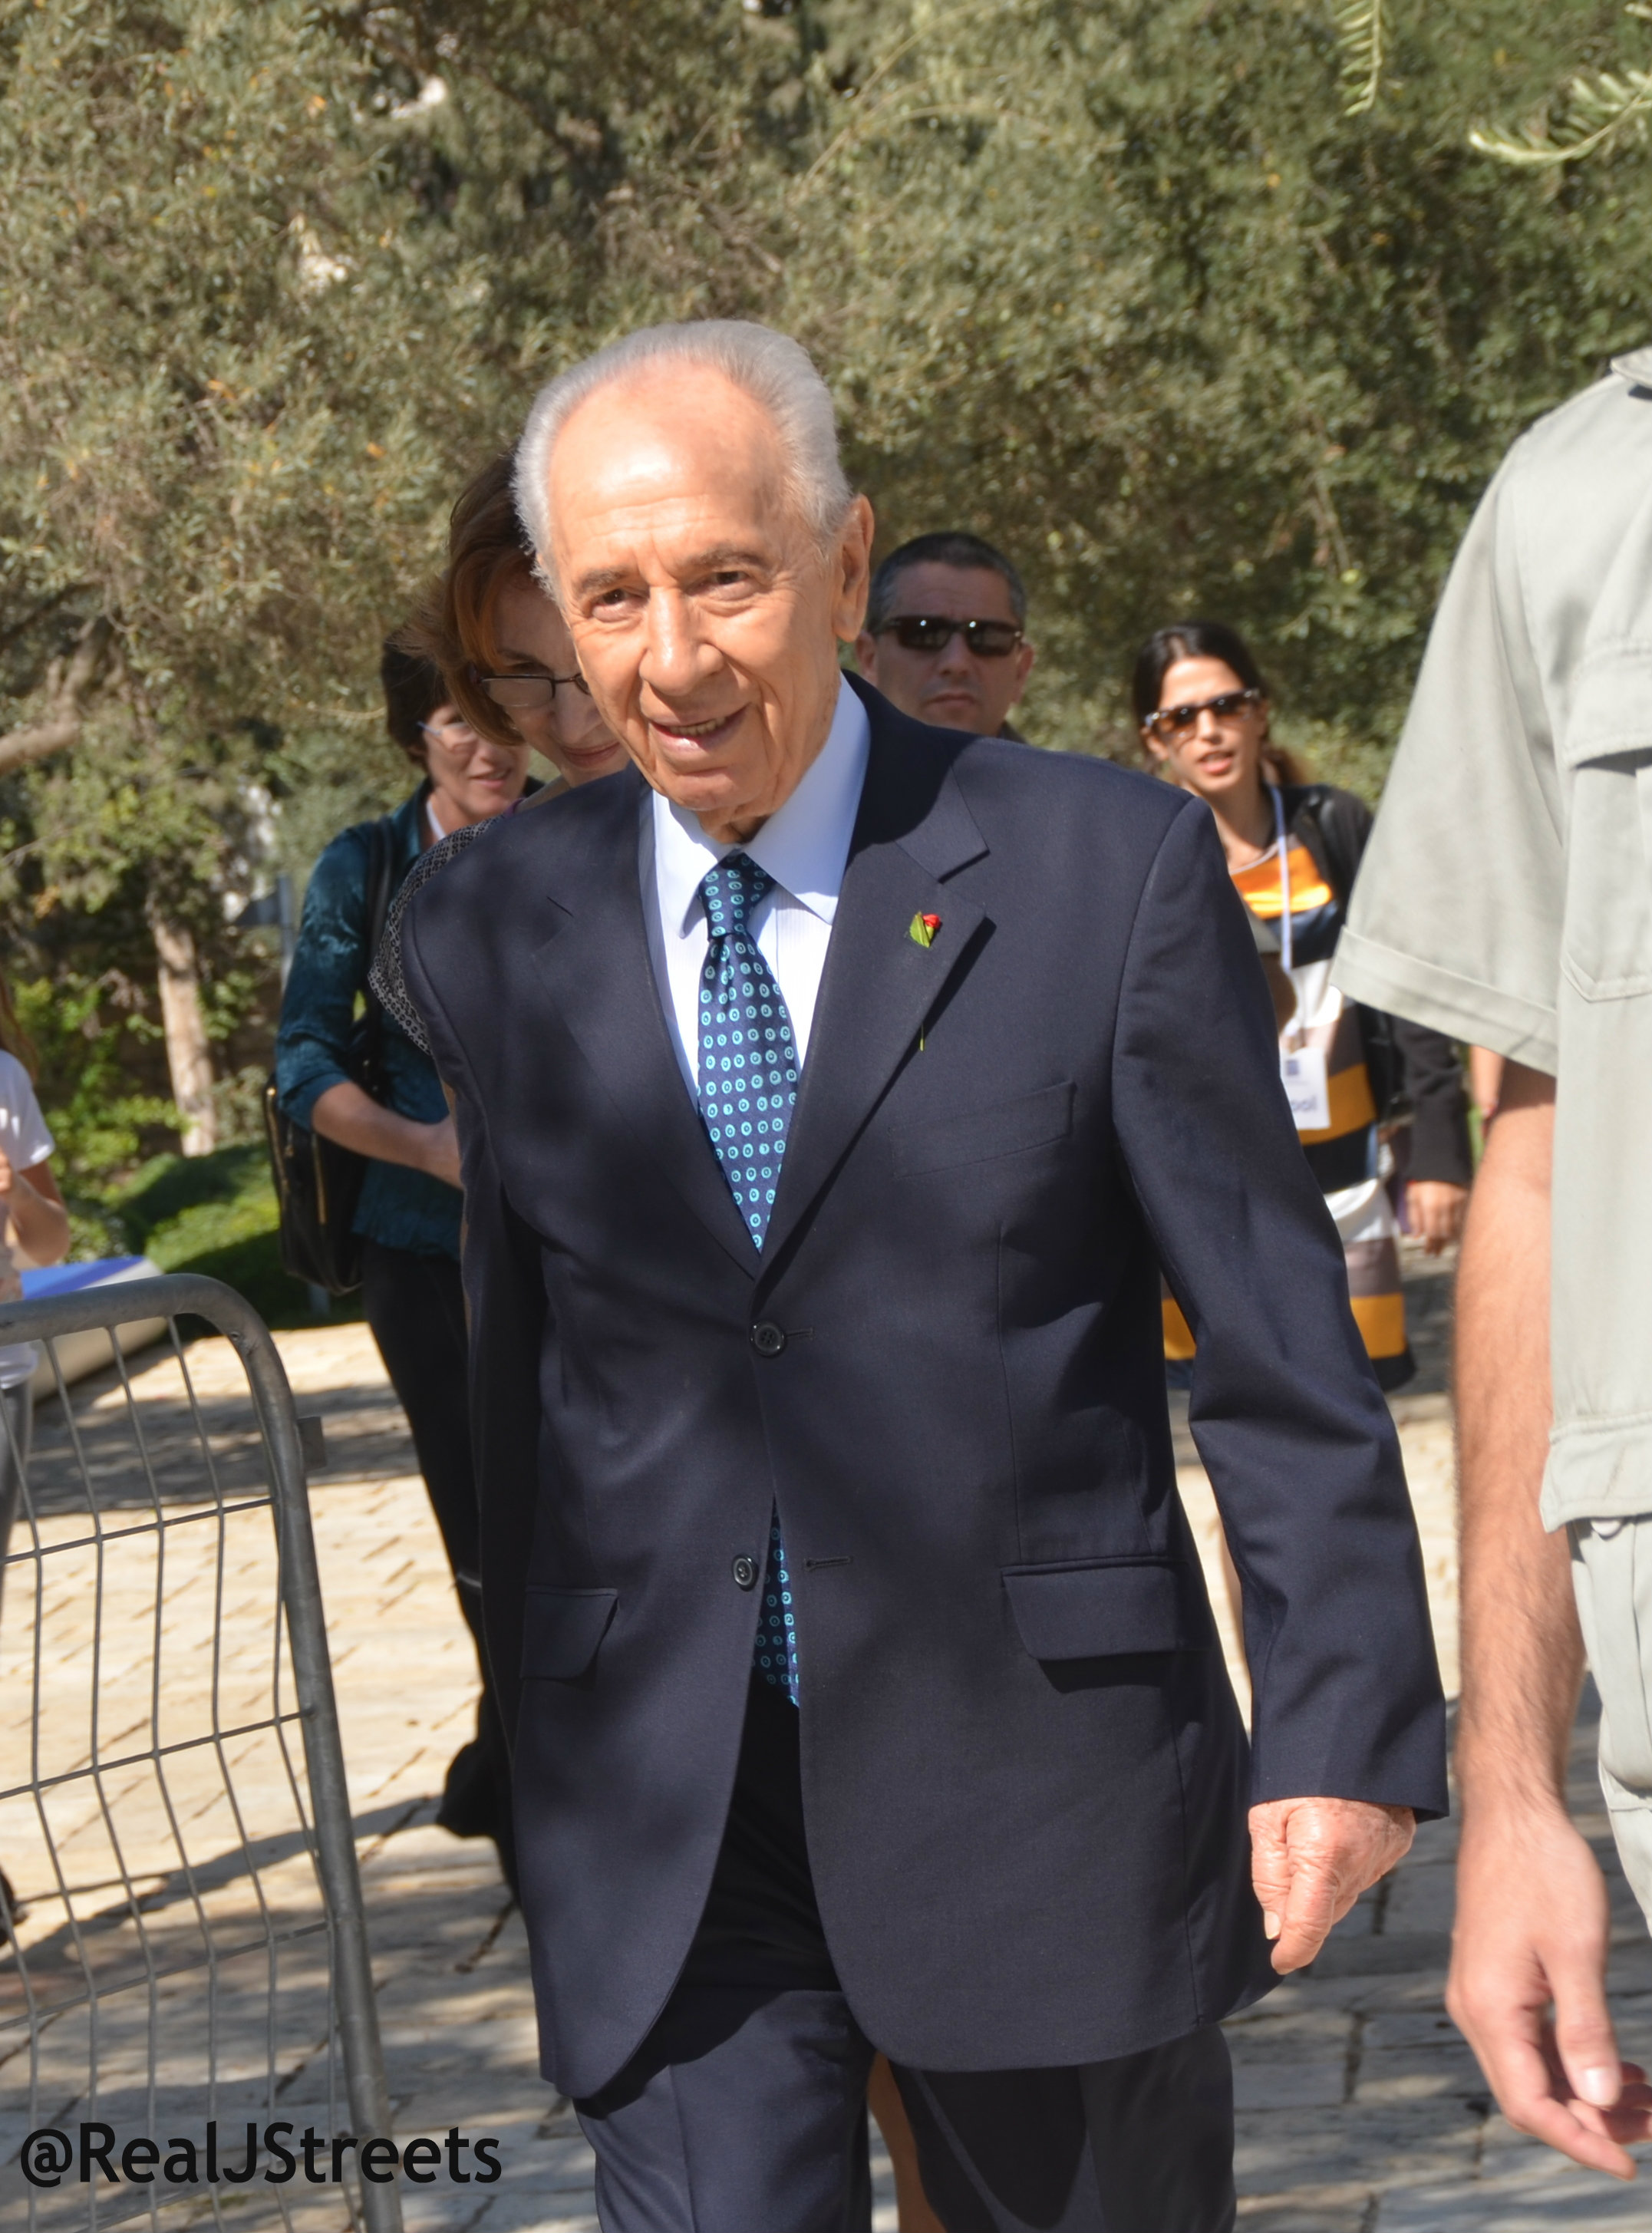 image president Israel, photos Shimon Peres, picture President.